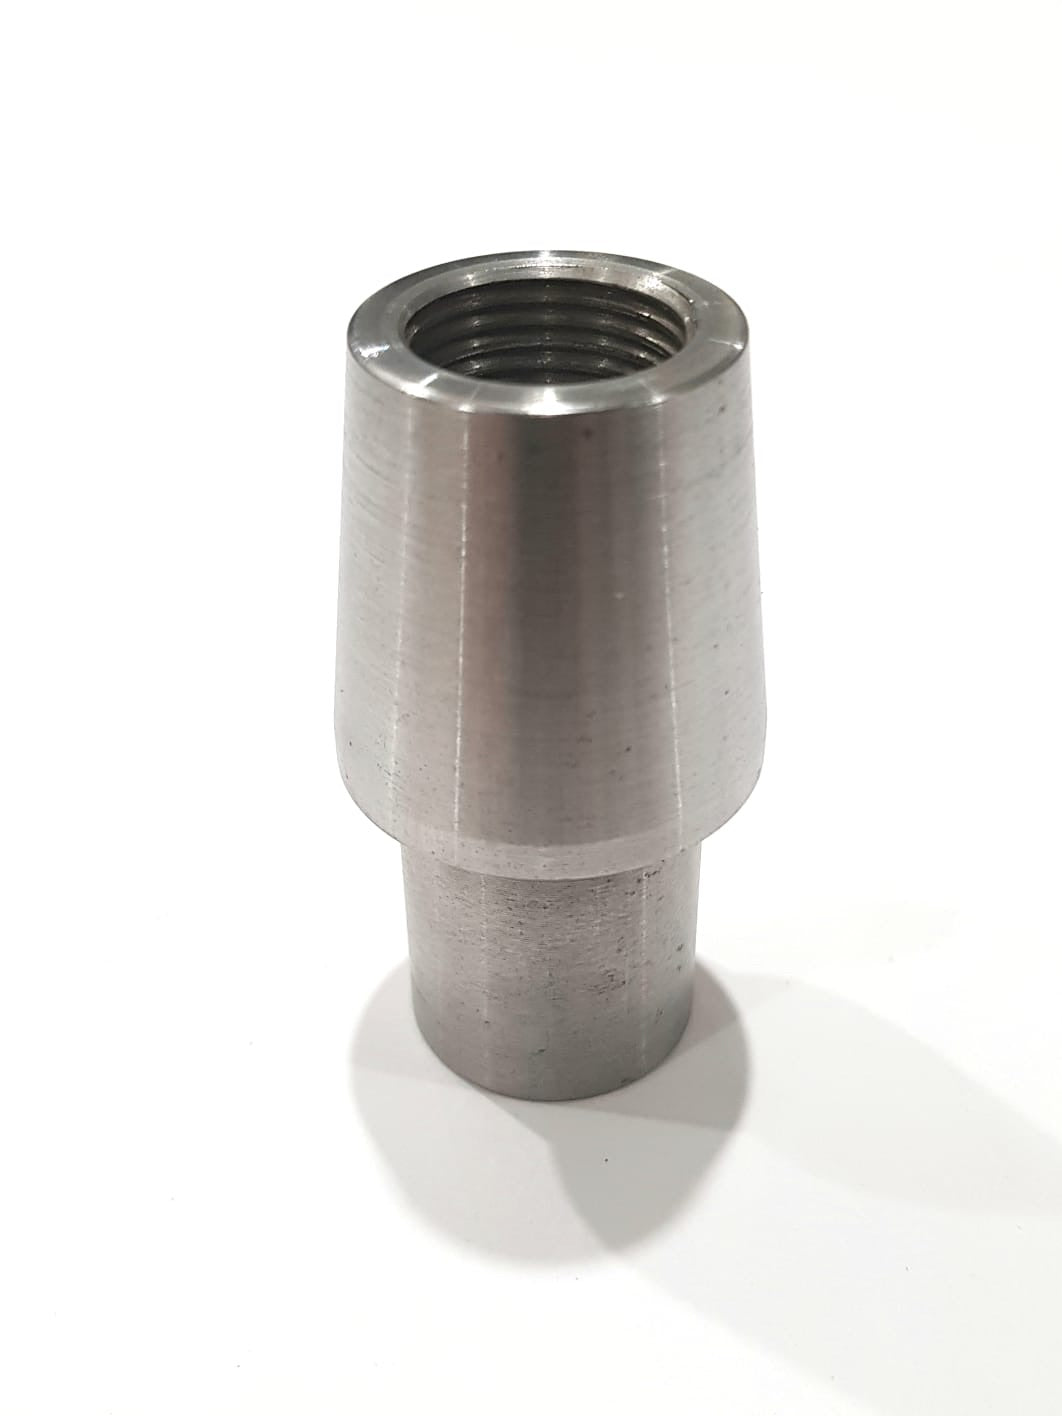 3/4 Rod End Threaded Bung